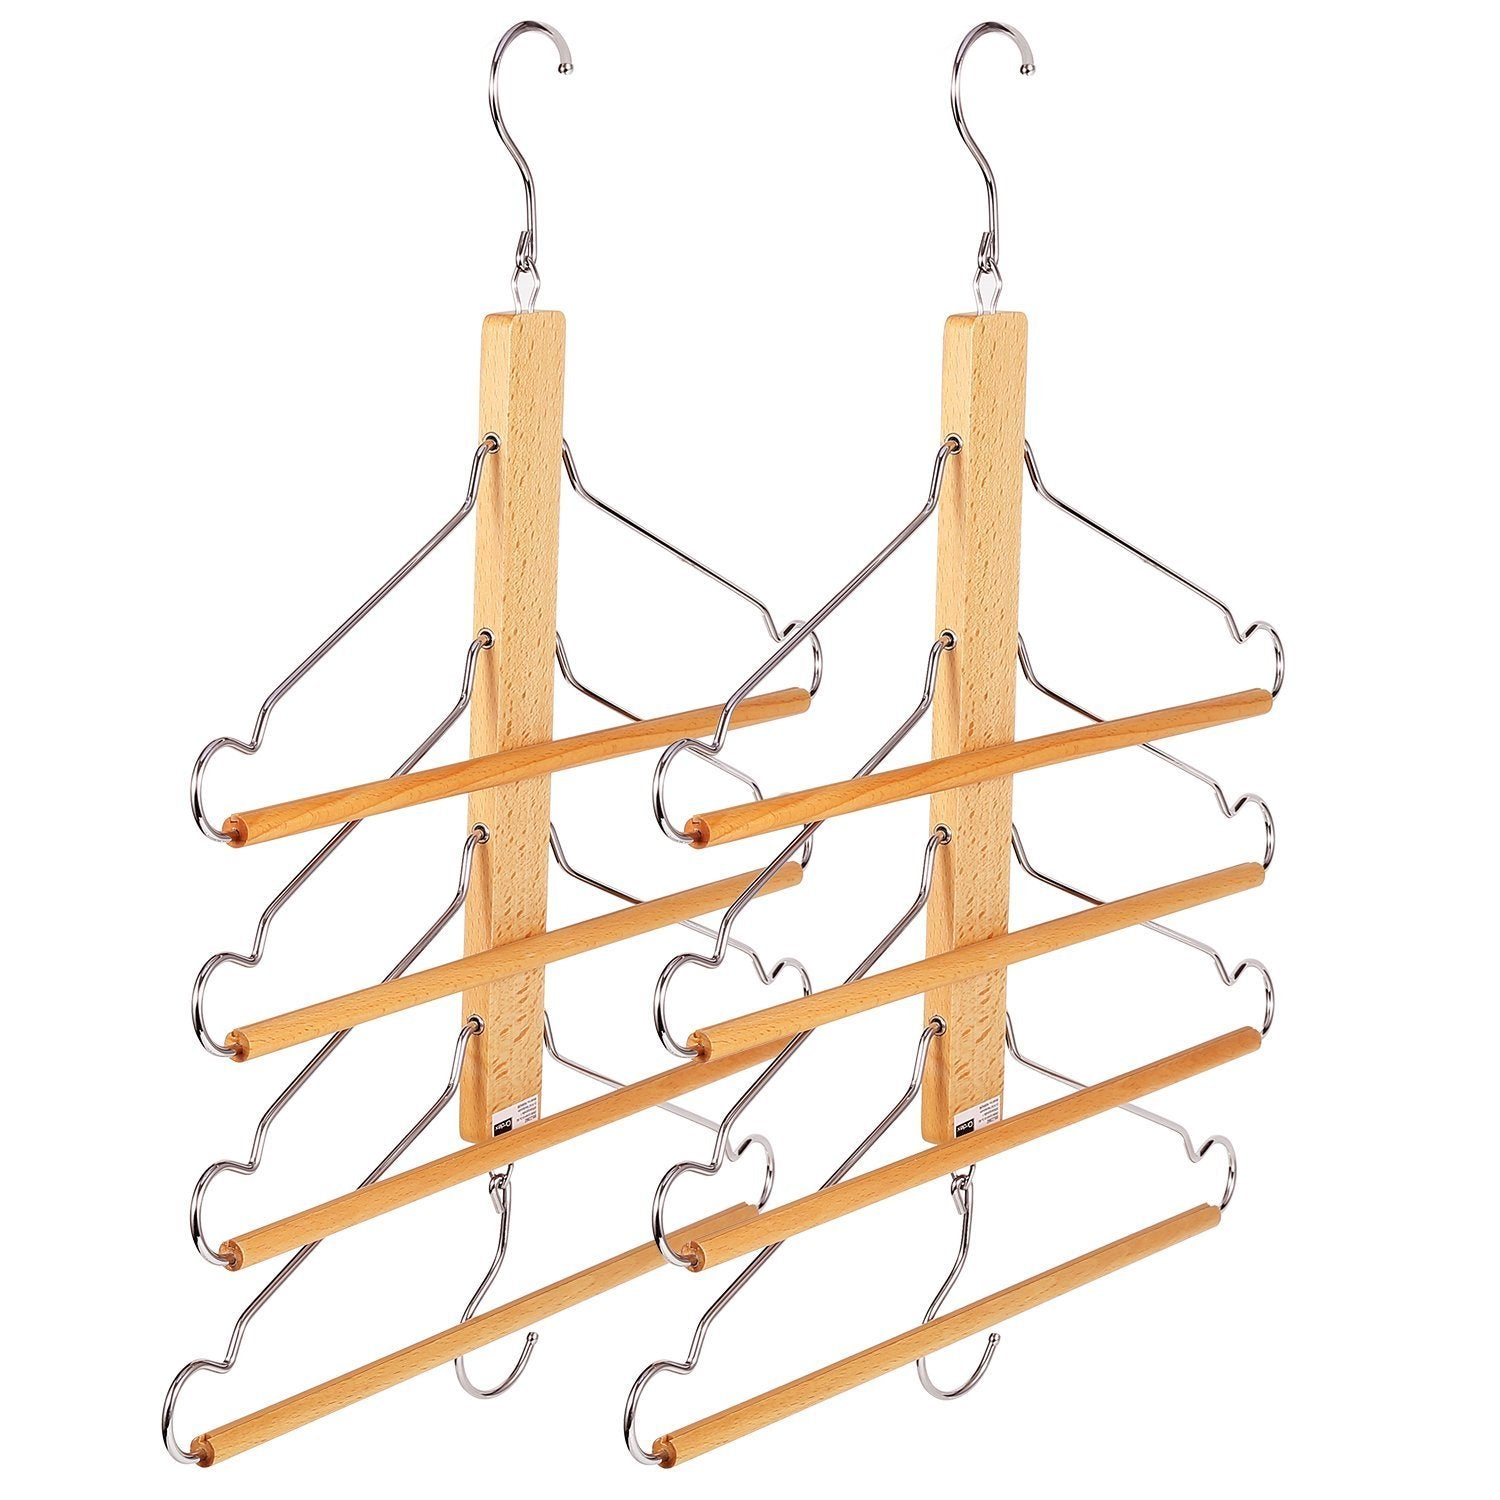 Shop bestool pants hangers wooden pant hangers non slip wood hangers clothes hangers for closet space saving heavy duty coat hanger huggable baby hangers dual use trouser hanger